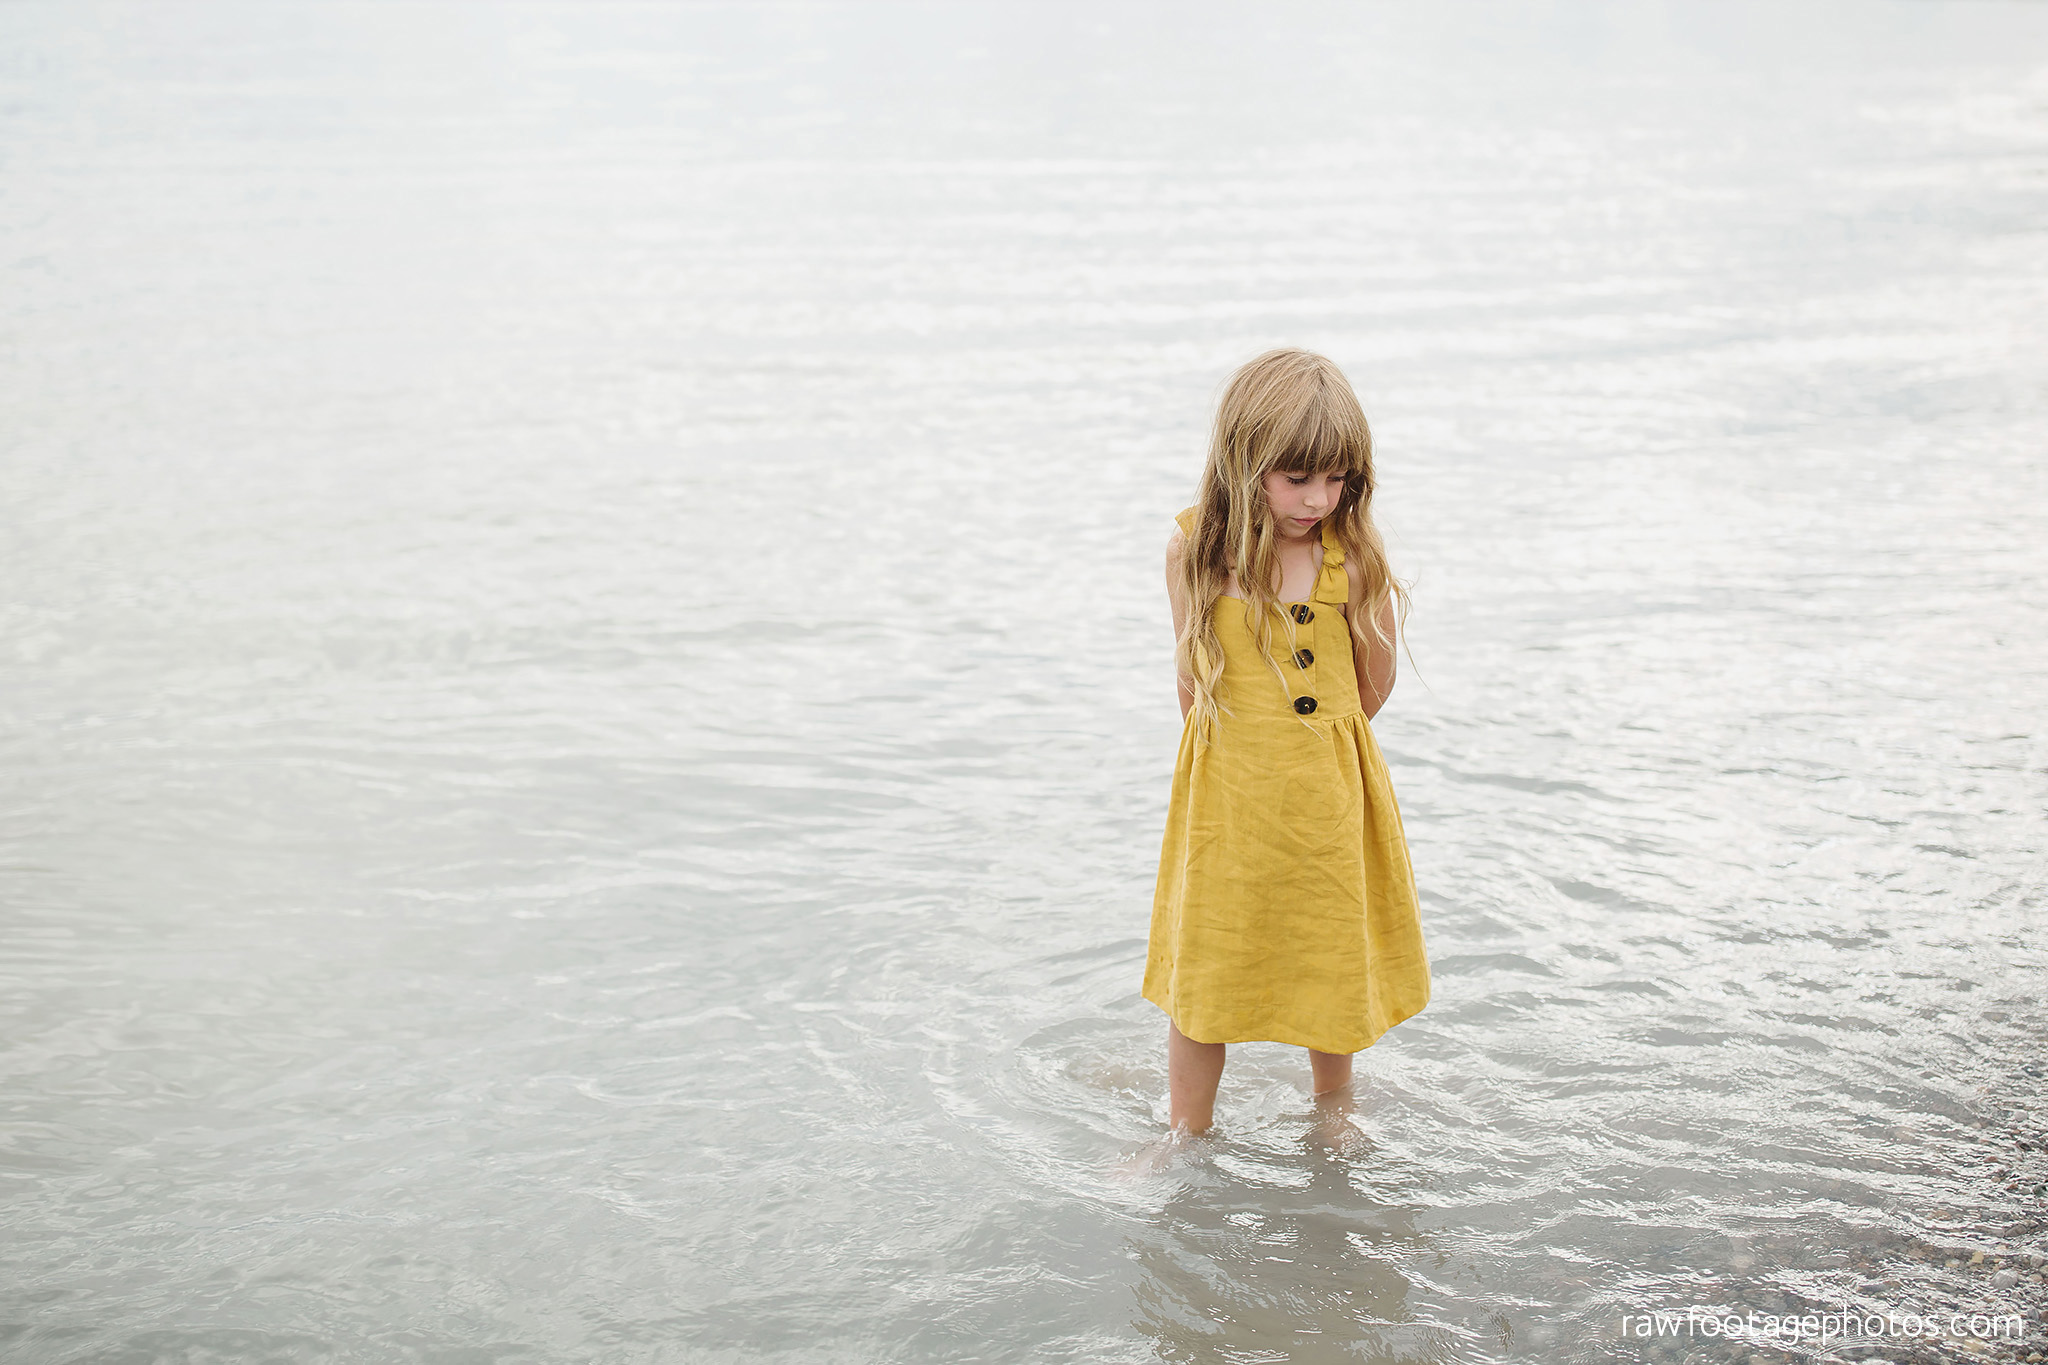 london_ontario_family_photographer-beach_minis-port_stanley_beach-raw_footage_photography056.jpg